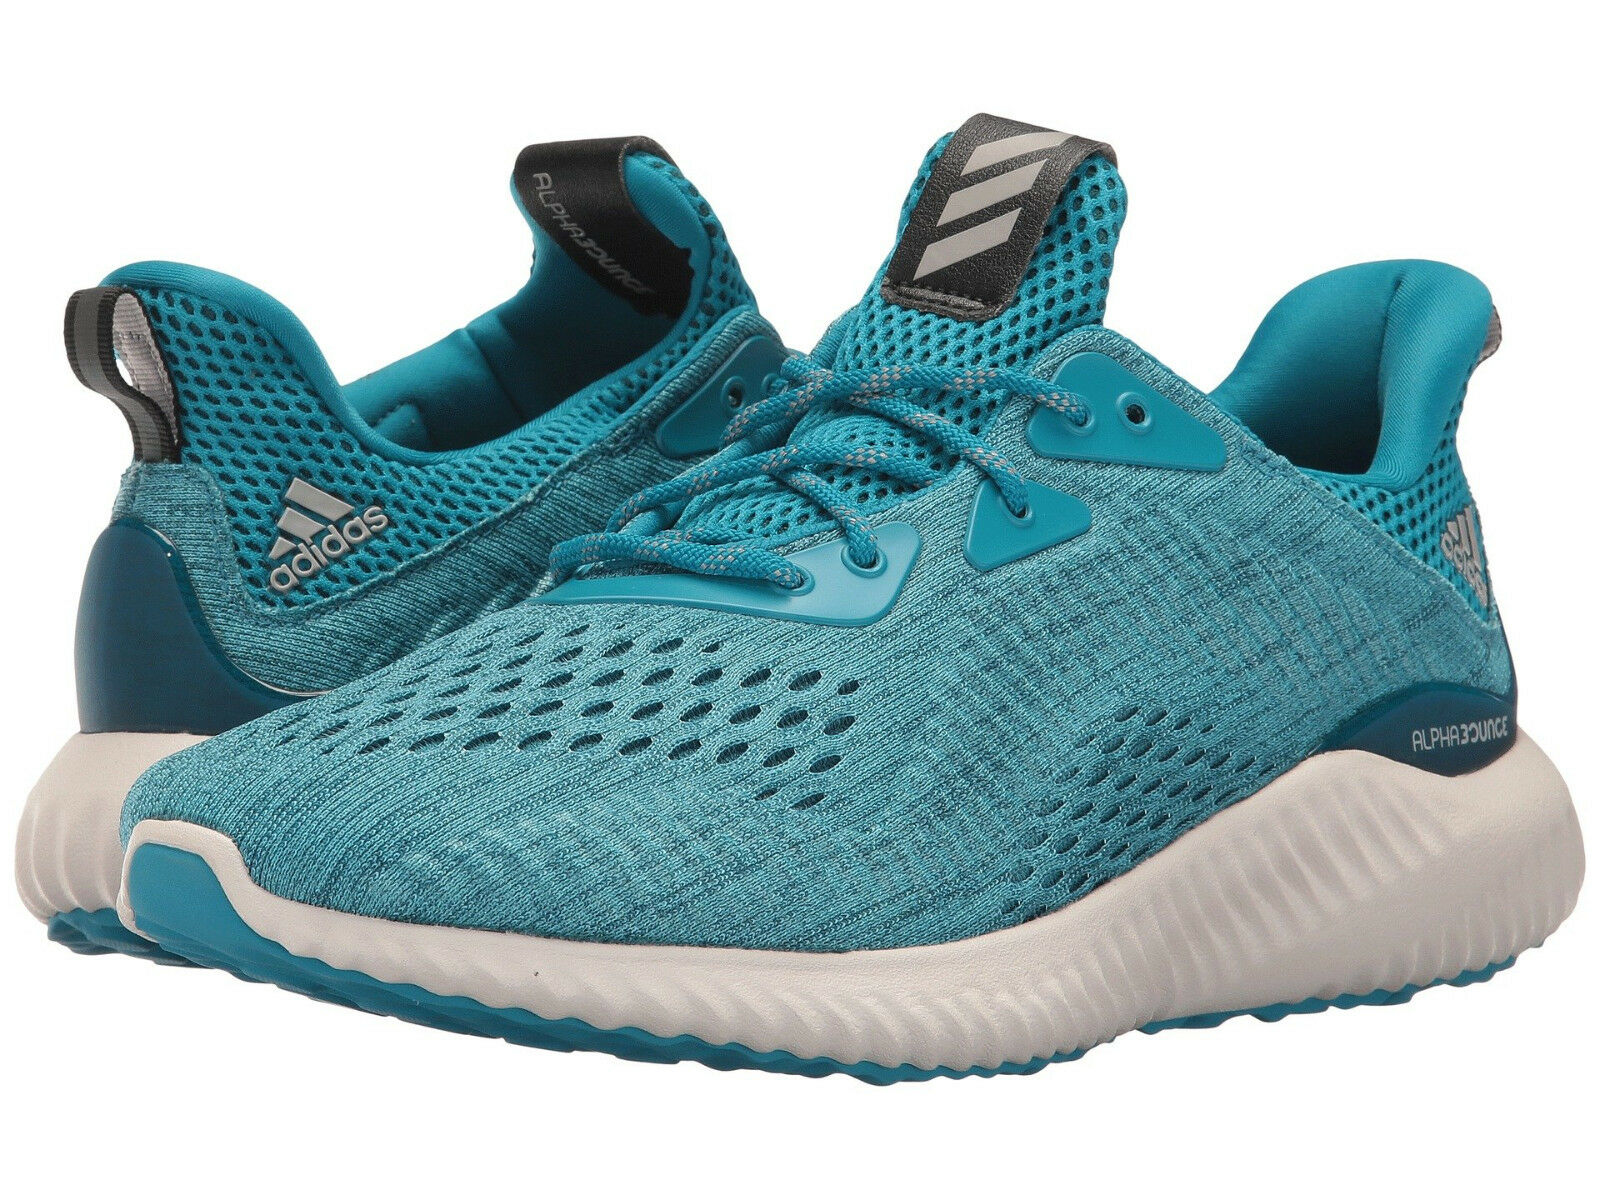 Adidas Synthetic Men's Alphabounce US 12 M Blue Synthetic Adidas Running Sneakers Shoes 110.00 c2bf1d